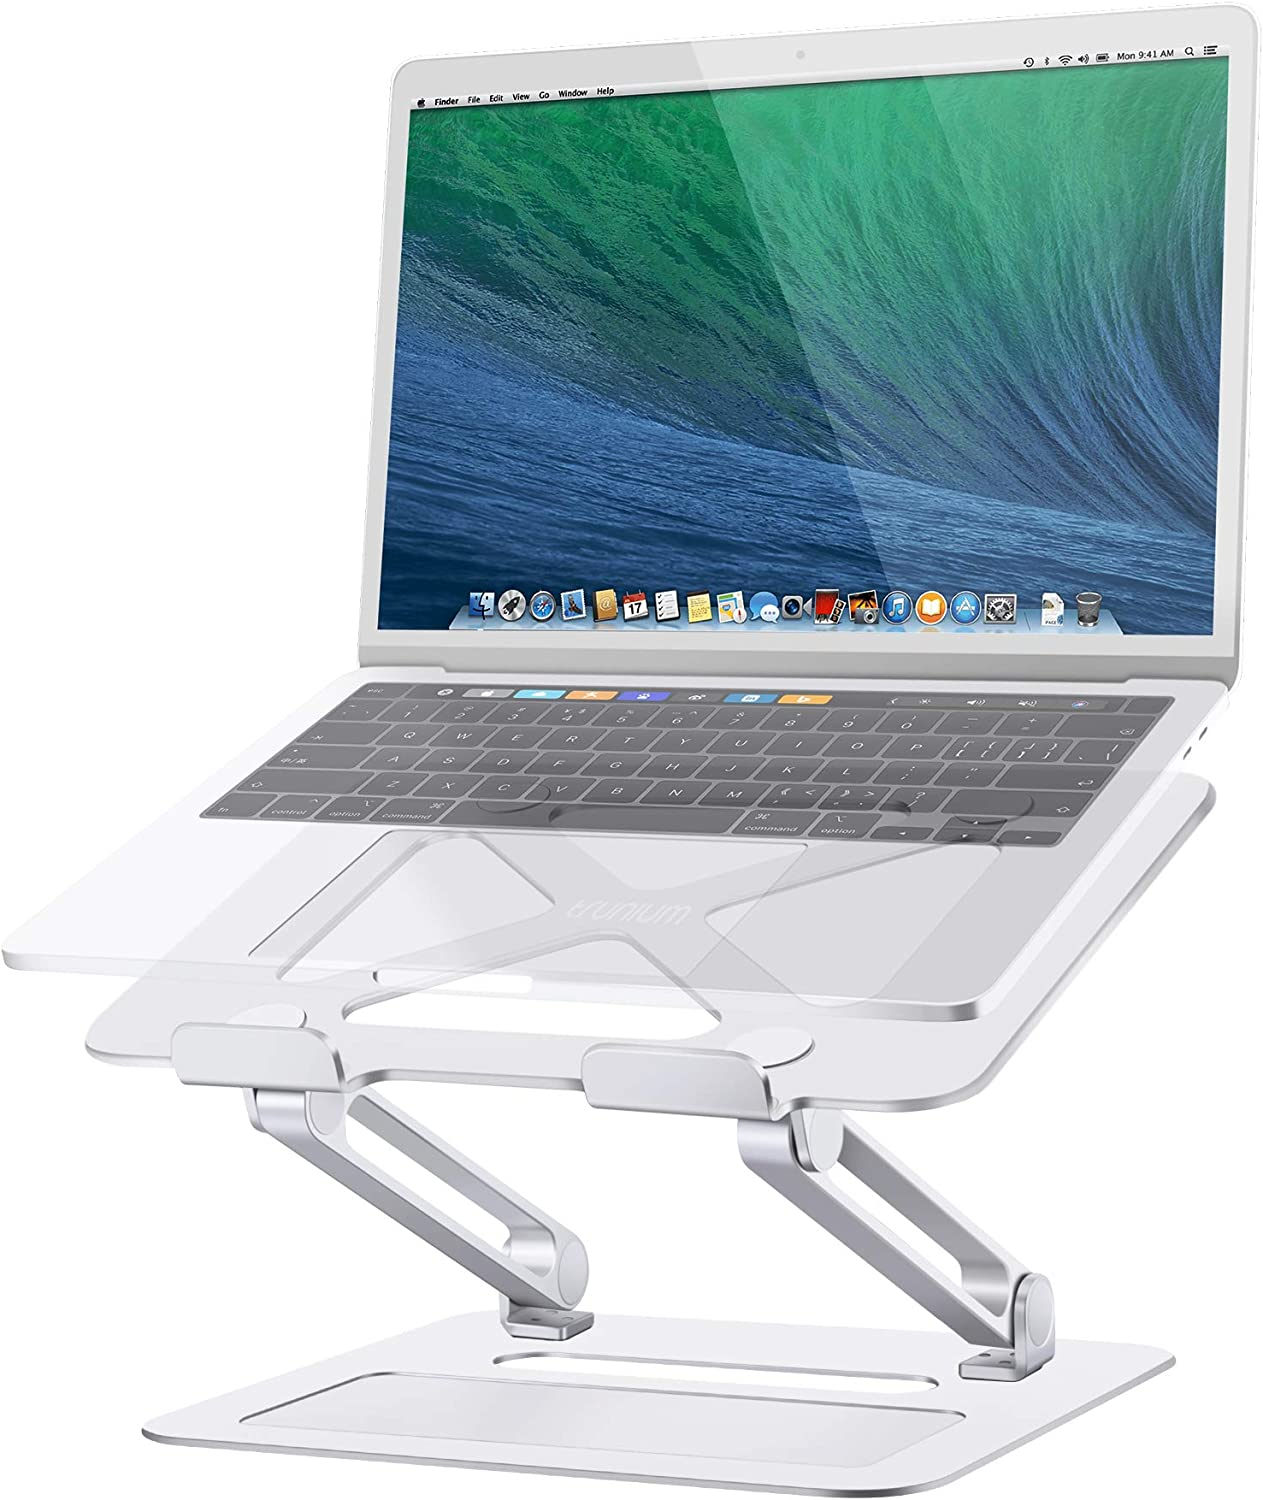 TRUNIUM Laptop Stand Adjustable Ergonomic Aluminum Computer Holder Riser for Desk Compatible with 10-15.6 Inches MacBook, Lenovo, HP, Dell, Samsung, and More Laptops (Silver)